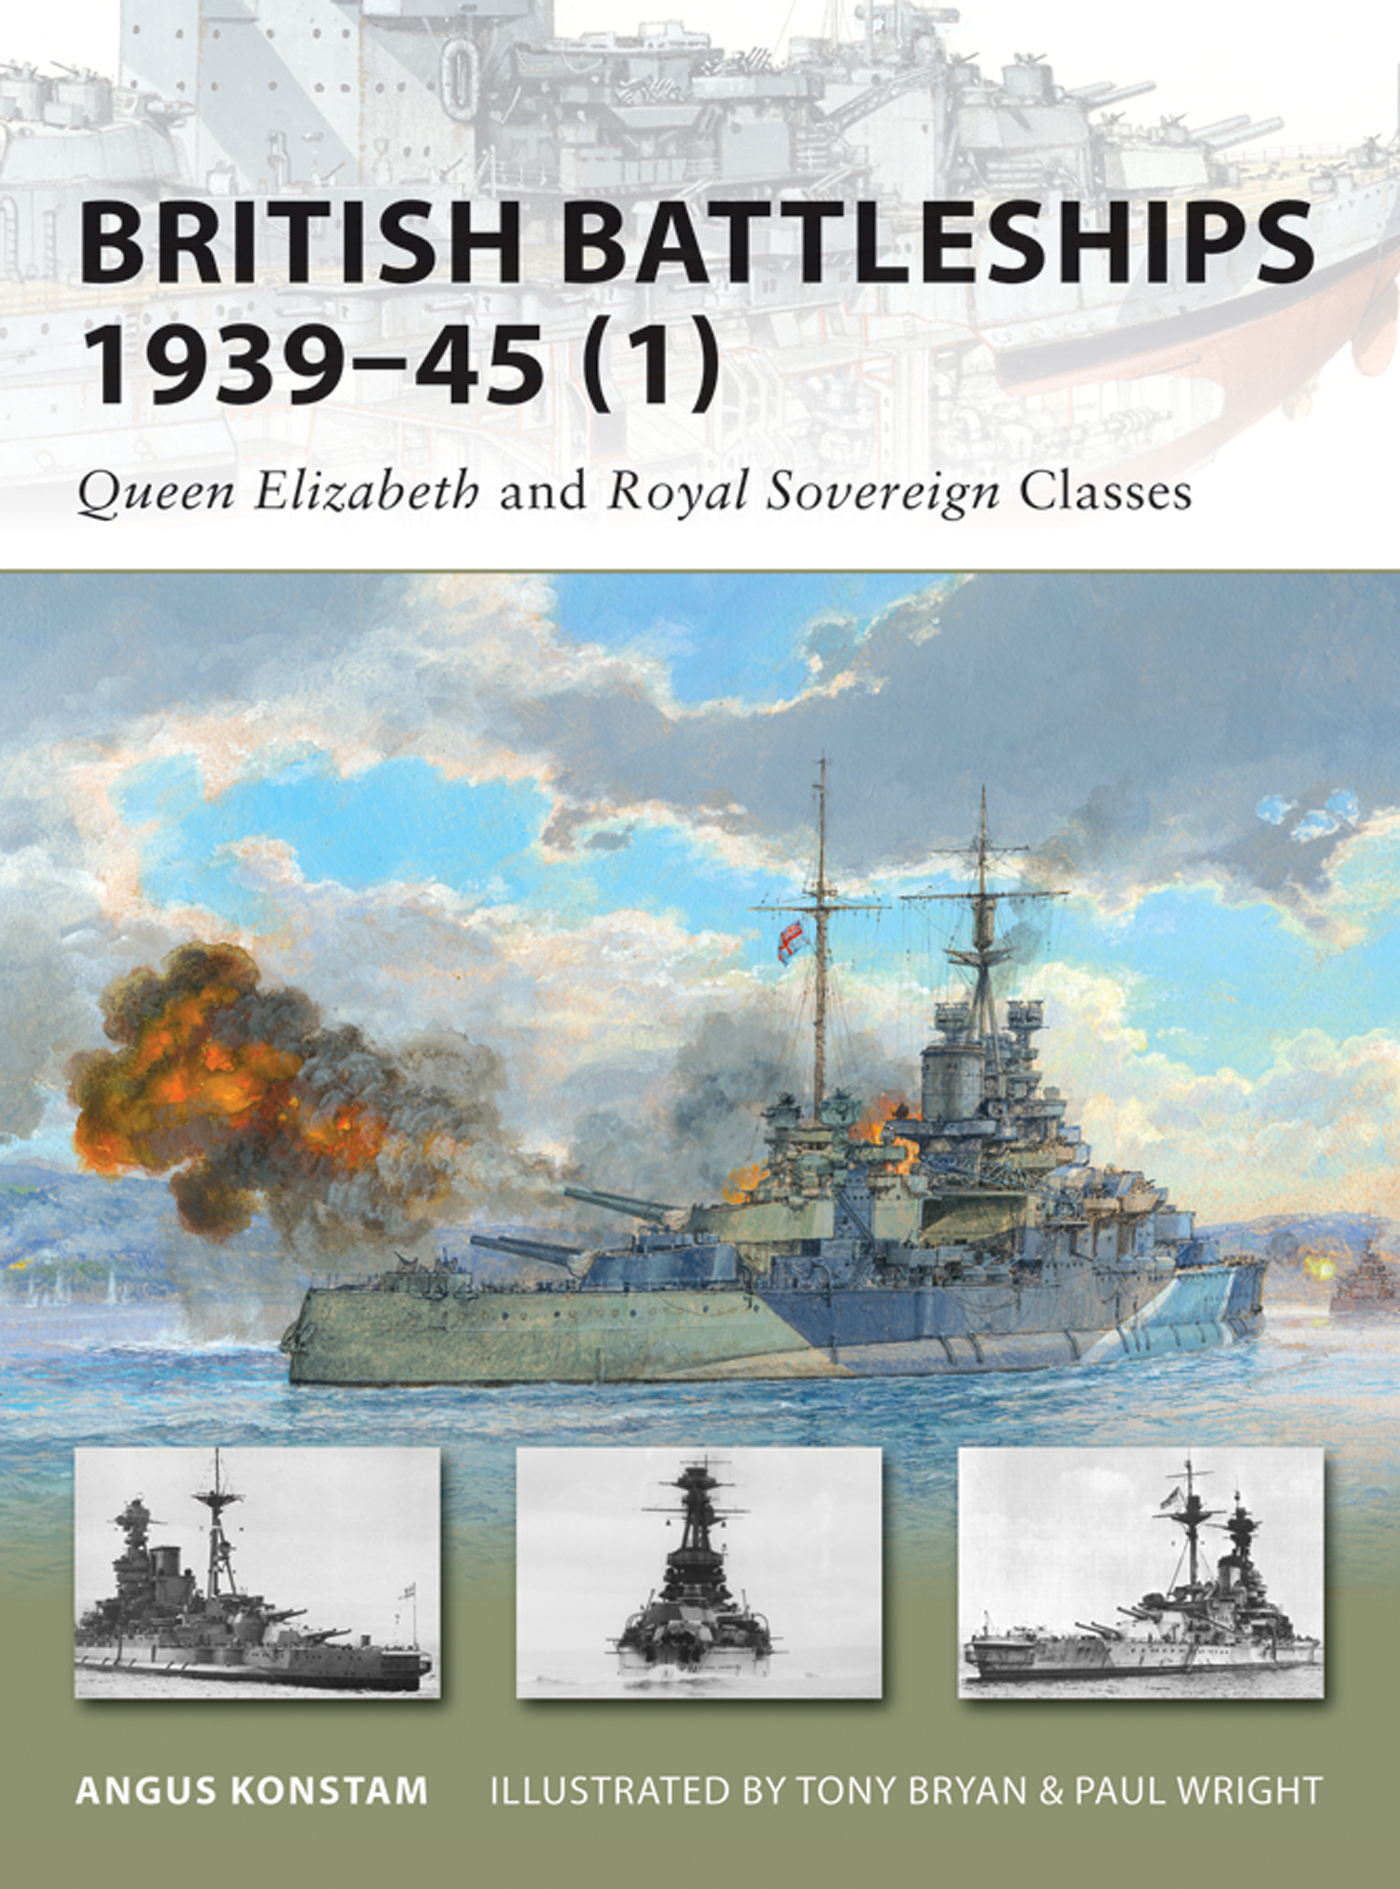 British Battleships 1939-45 (1): Queen Elizabeth and Royal Sovereign Classes